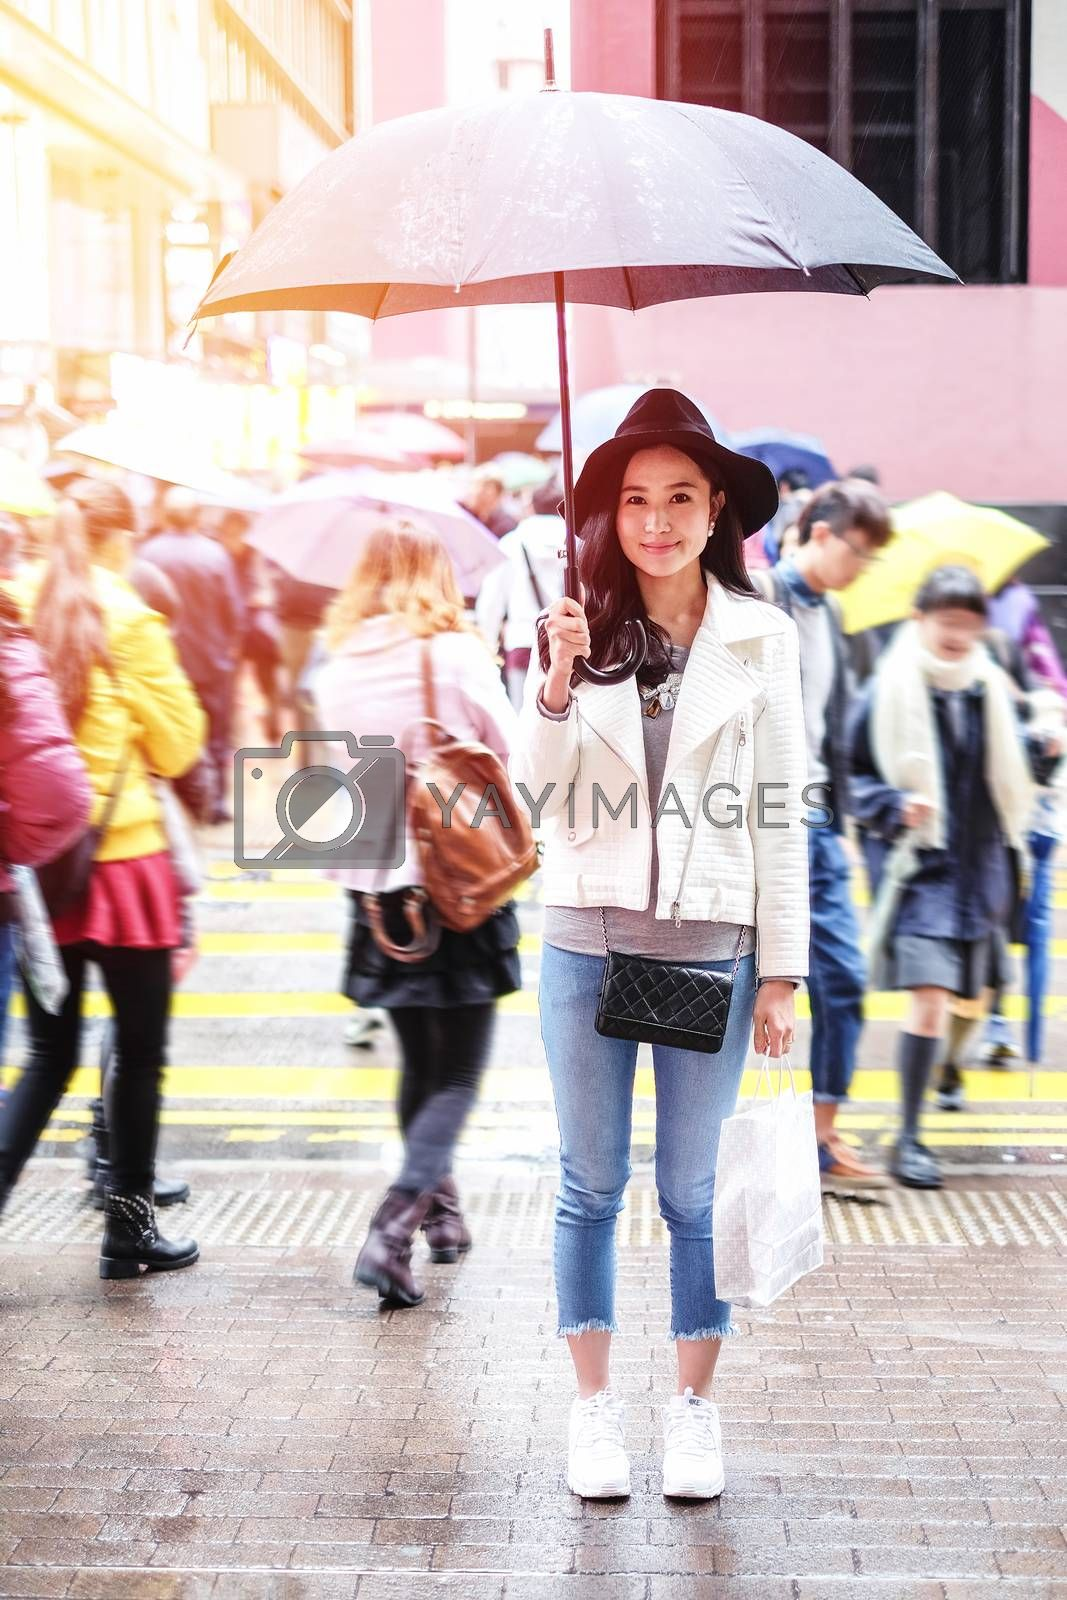 beautiful woman with shopping bags on the street in the rainny day